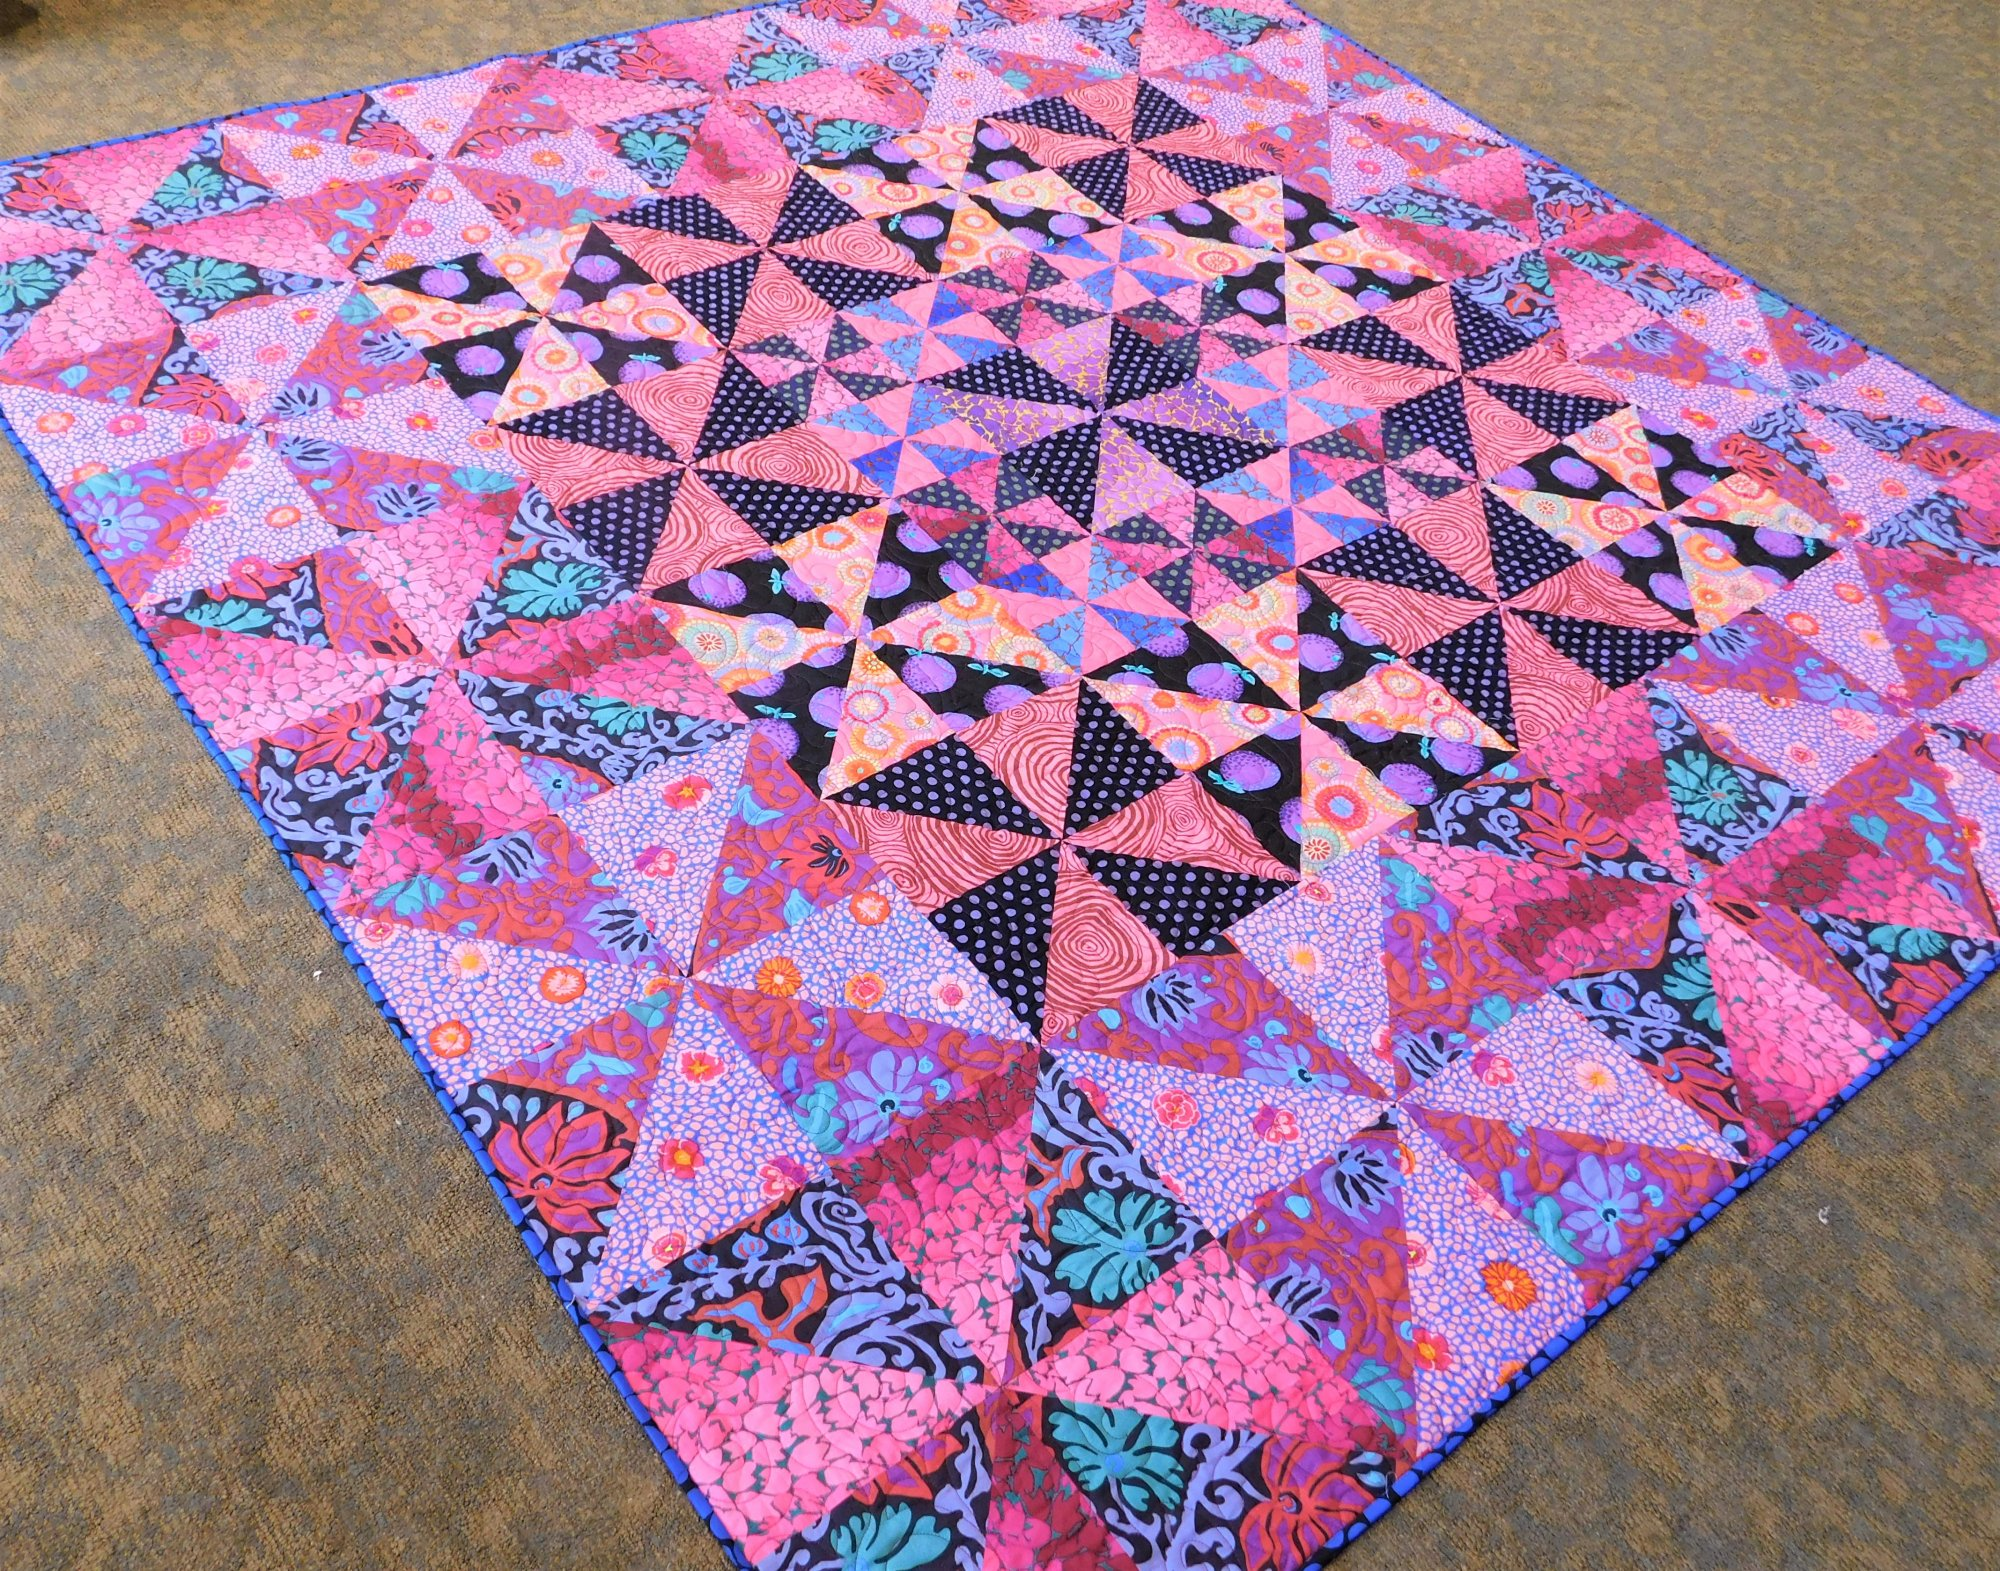 Fruits of the Forest Quilt Kit - 80 1/2 x 80 1/2